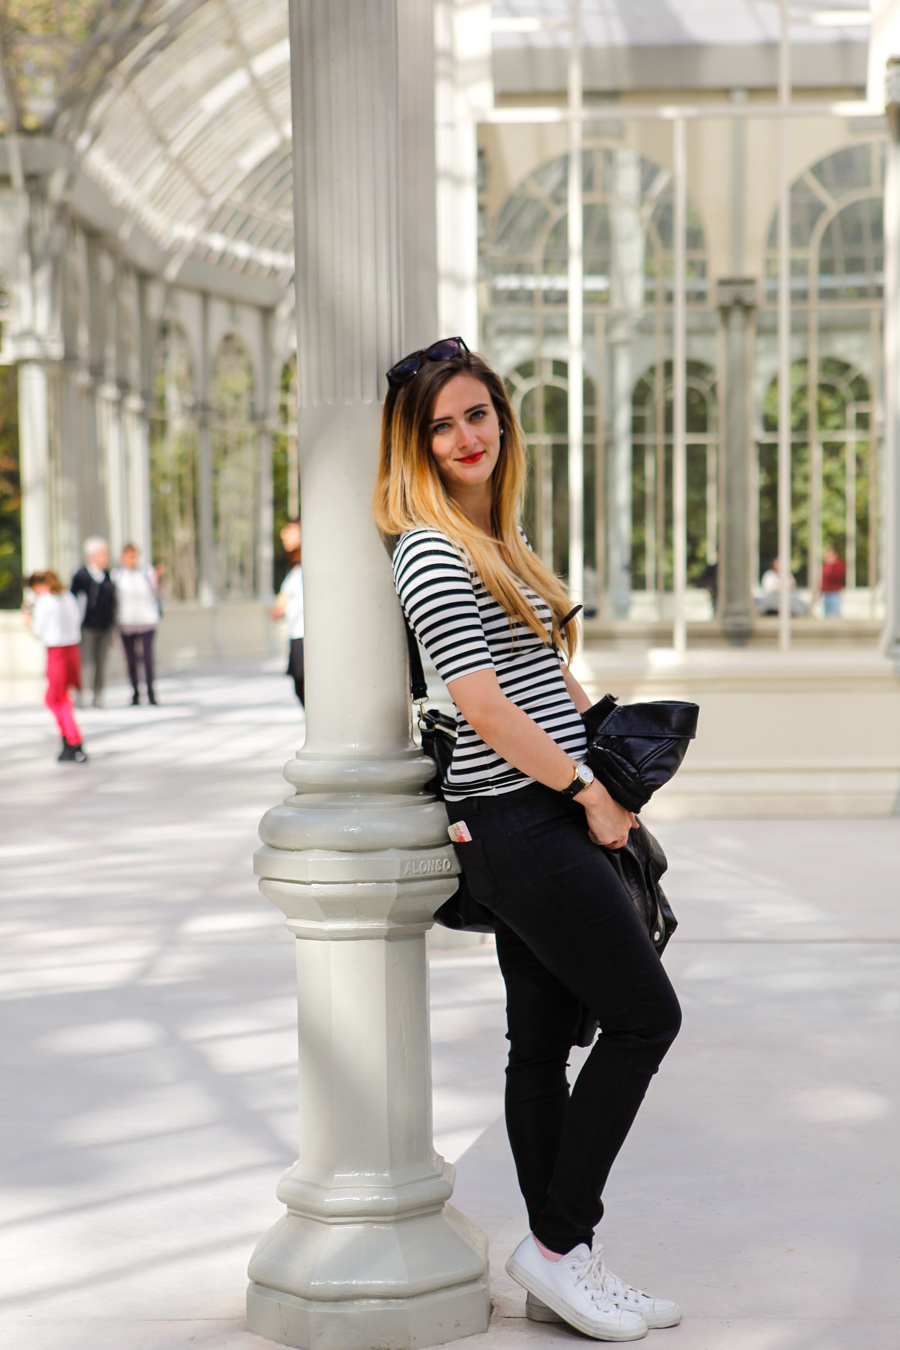 Levitate Style, Levitate Travel, His & Her, Stripes, Leo Chan, Alicia Mara, menswear, Madrid Spain Travel